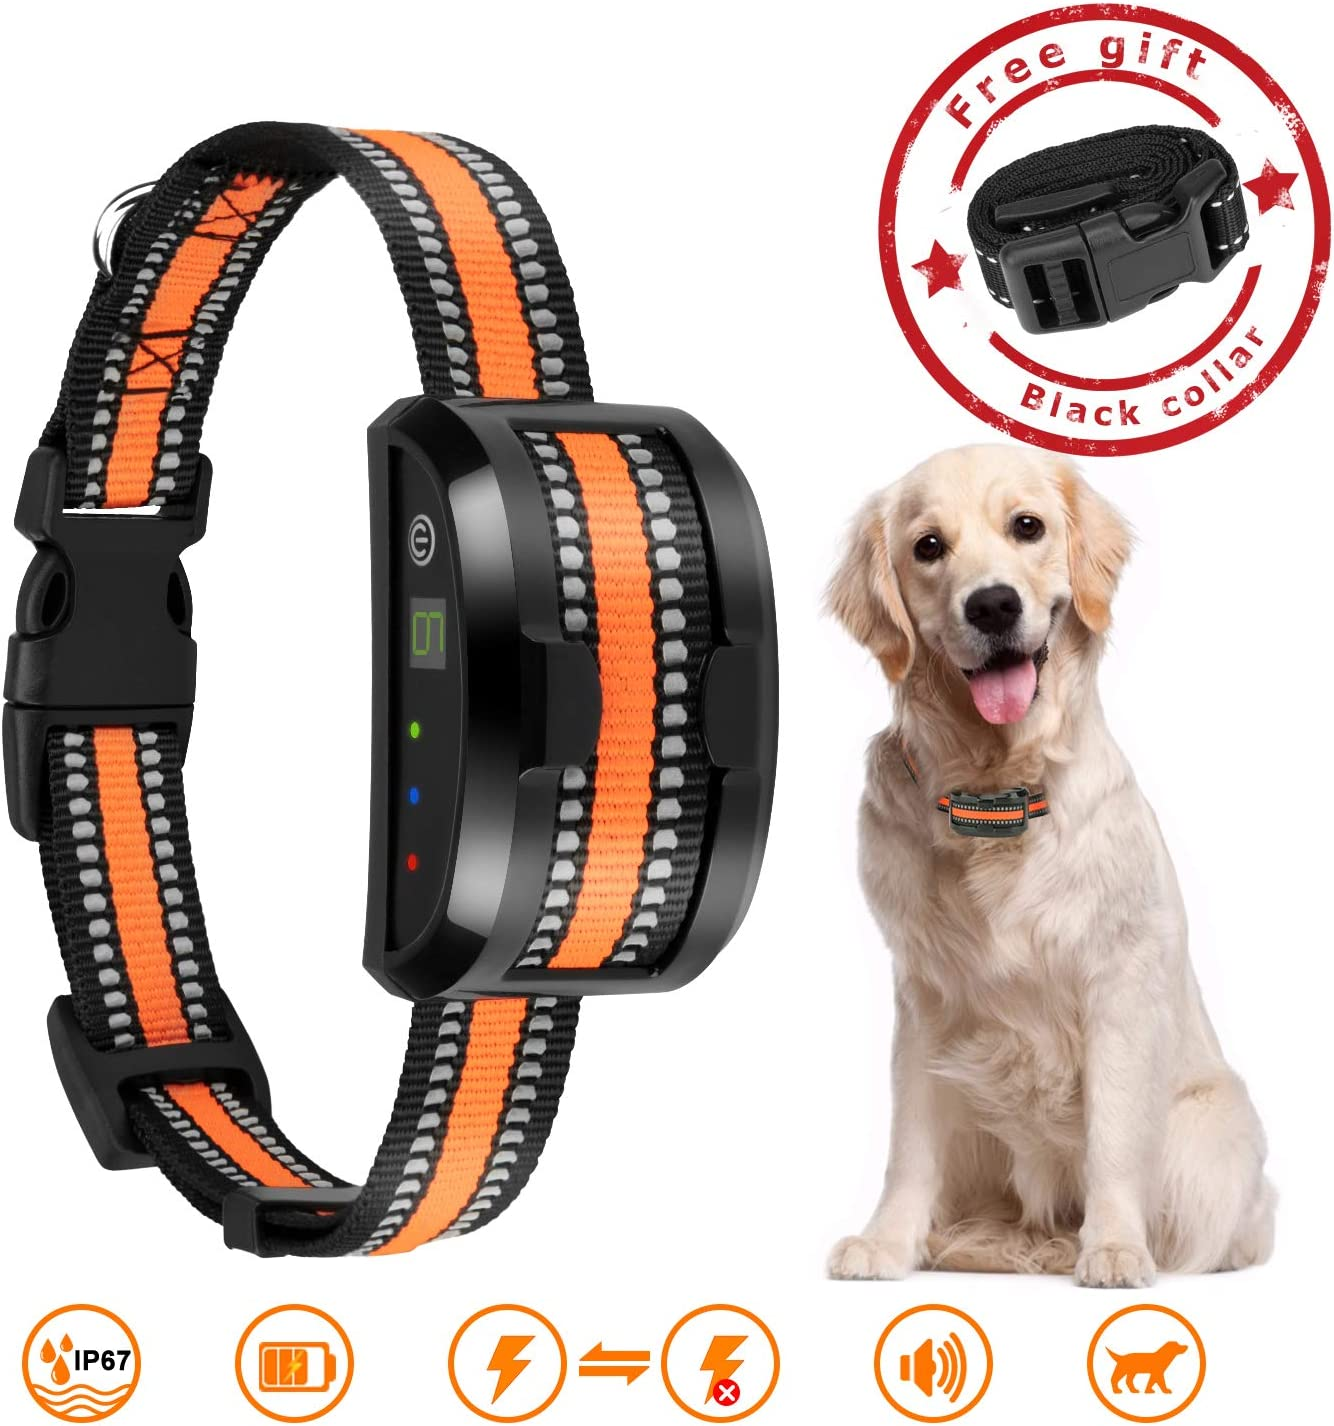 Rechargeable Bark Collar-Anti Barking Collar with Beep Vibration and No Harm Shock Smart Detection Module Waterproof Stop Bark Collar for Small Medium Large Dogs